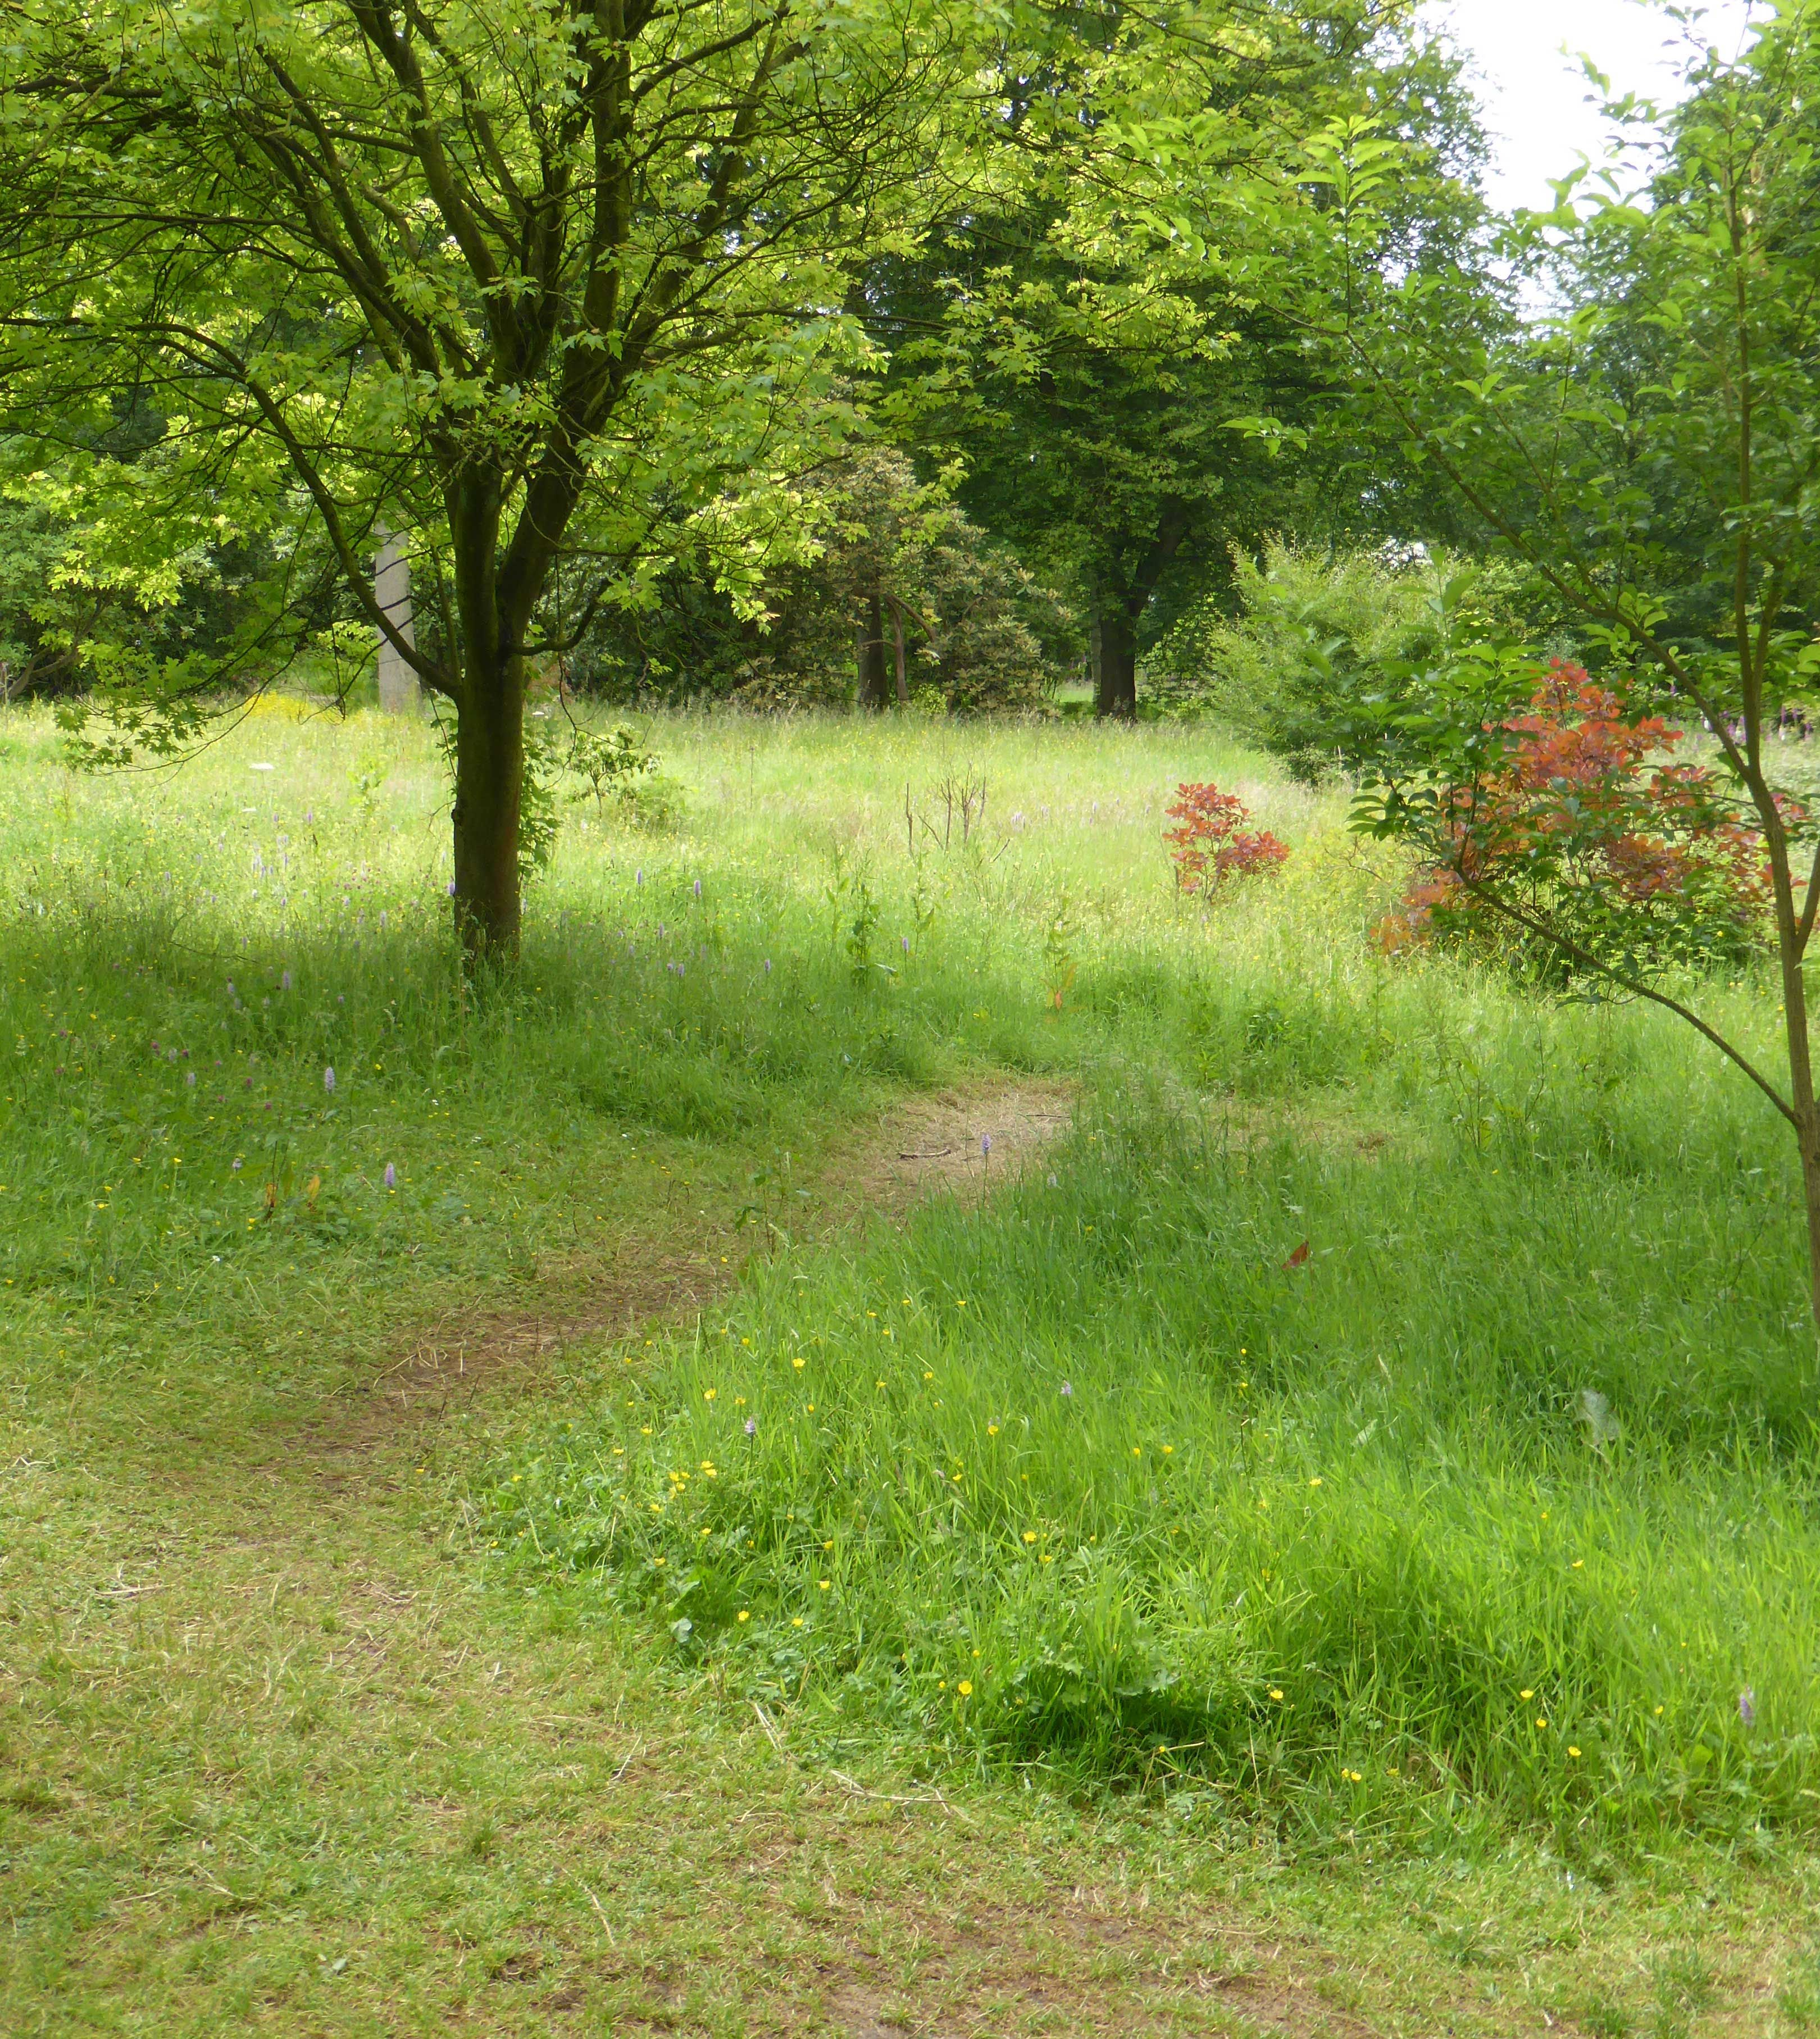 There are large areas of woodland to walk through and enjoy